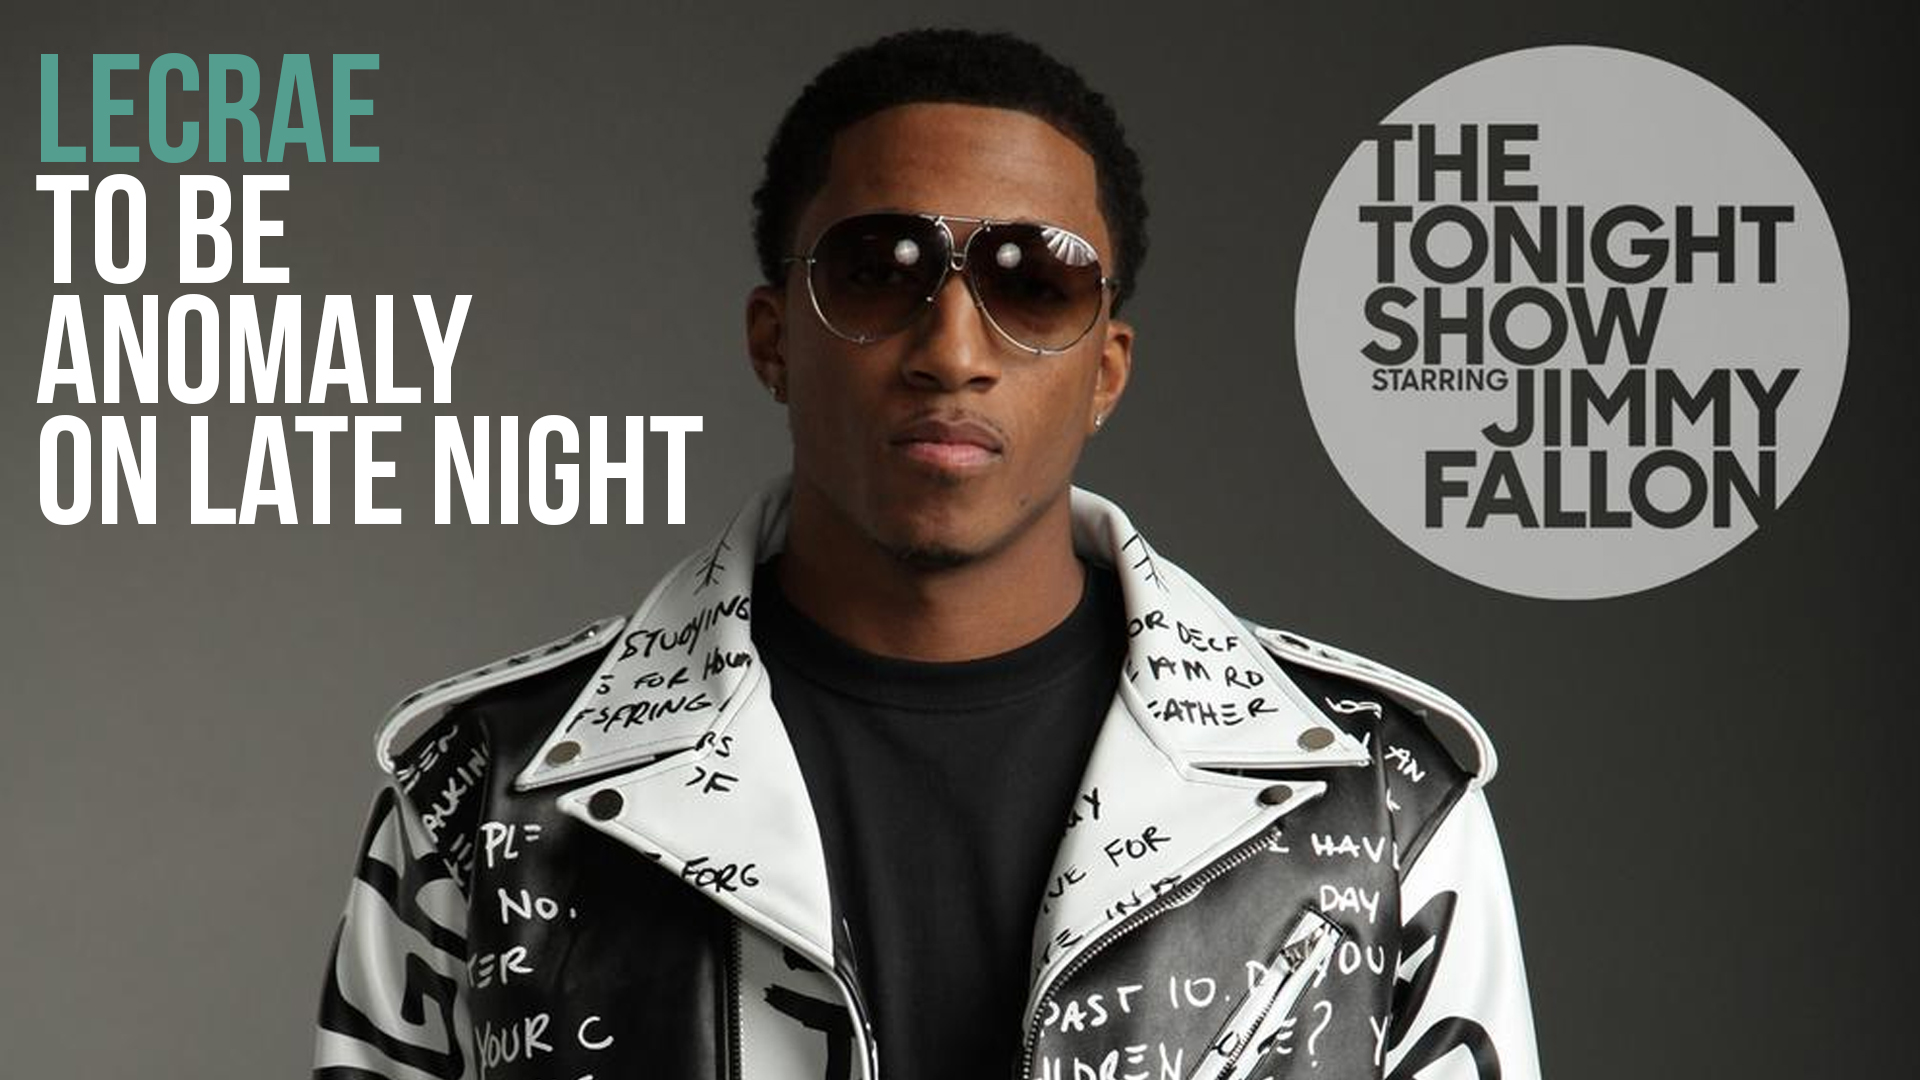 Lecrae to appear on Late Night with Jimmy Fallon